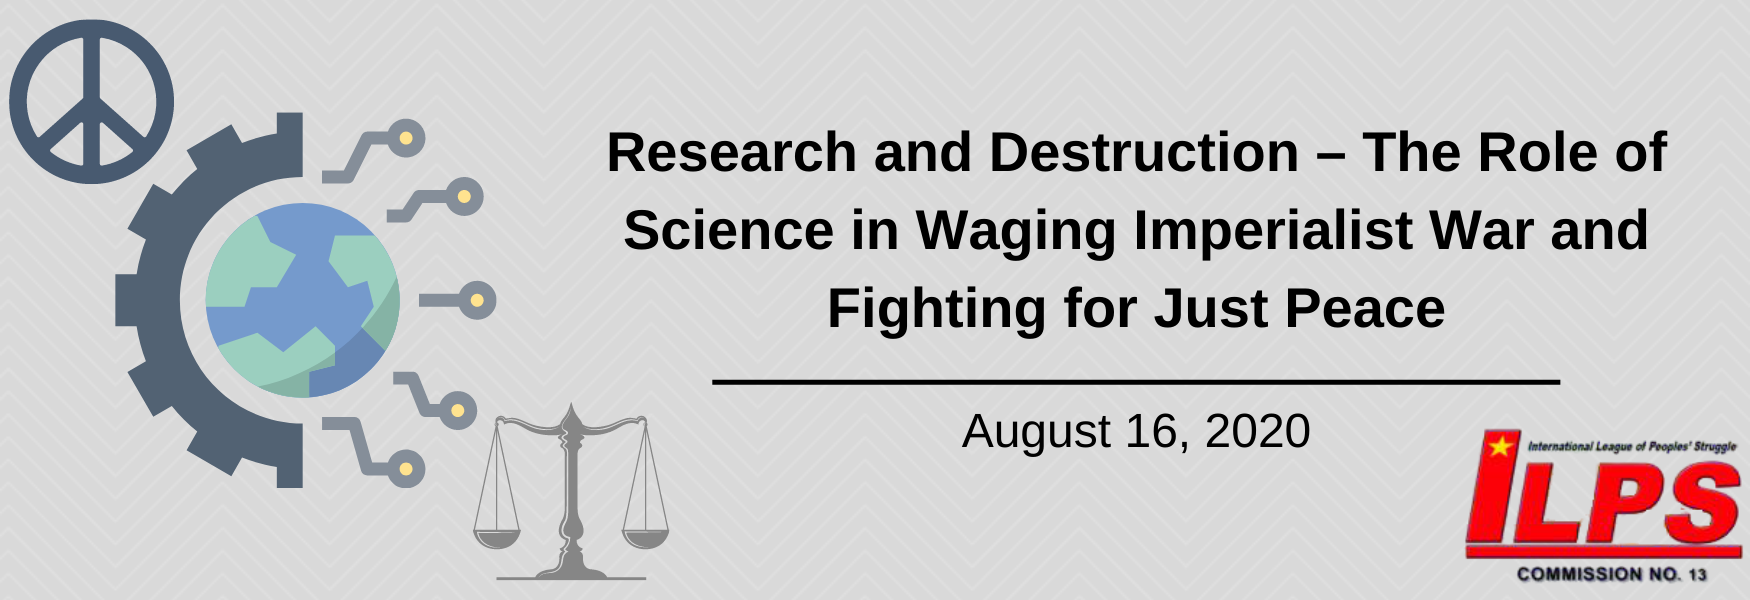 Research and Destruction – The Role of Science in Waging Imperialist War and Fighting for Just Peace